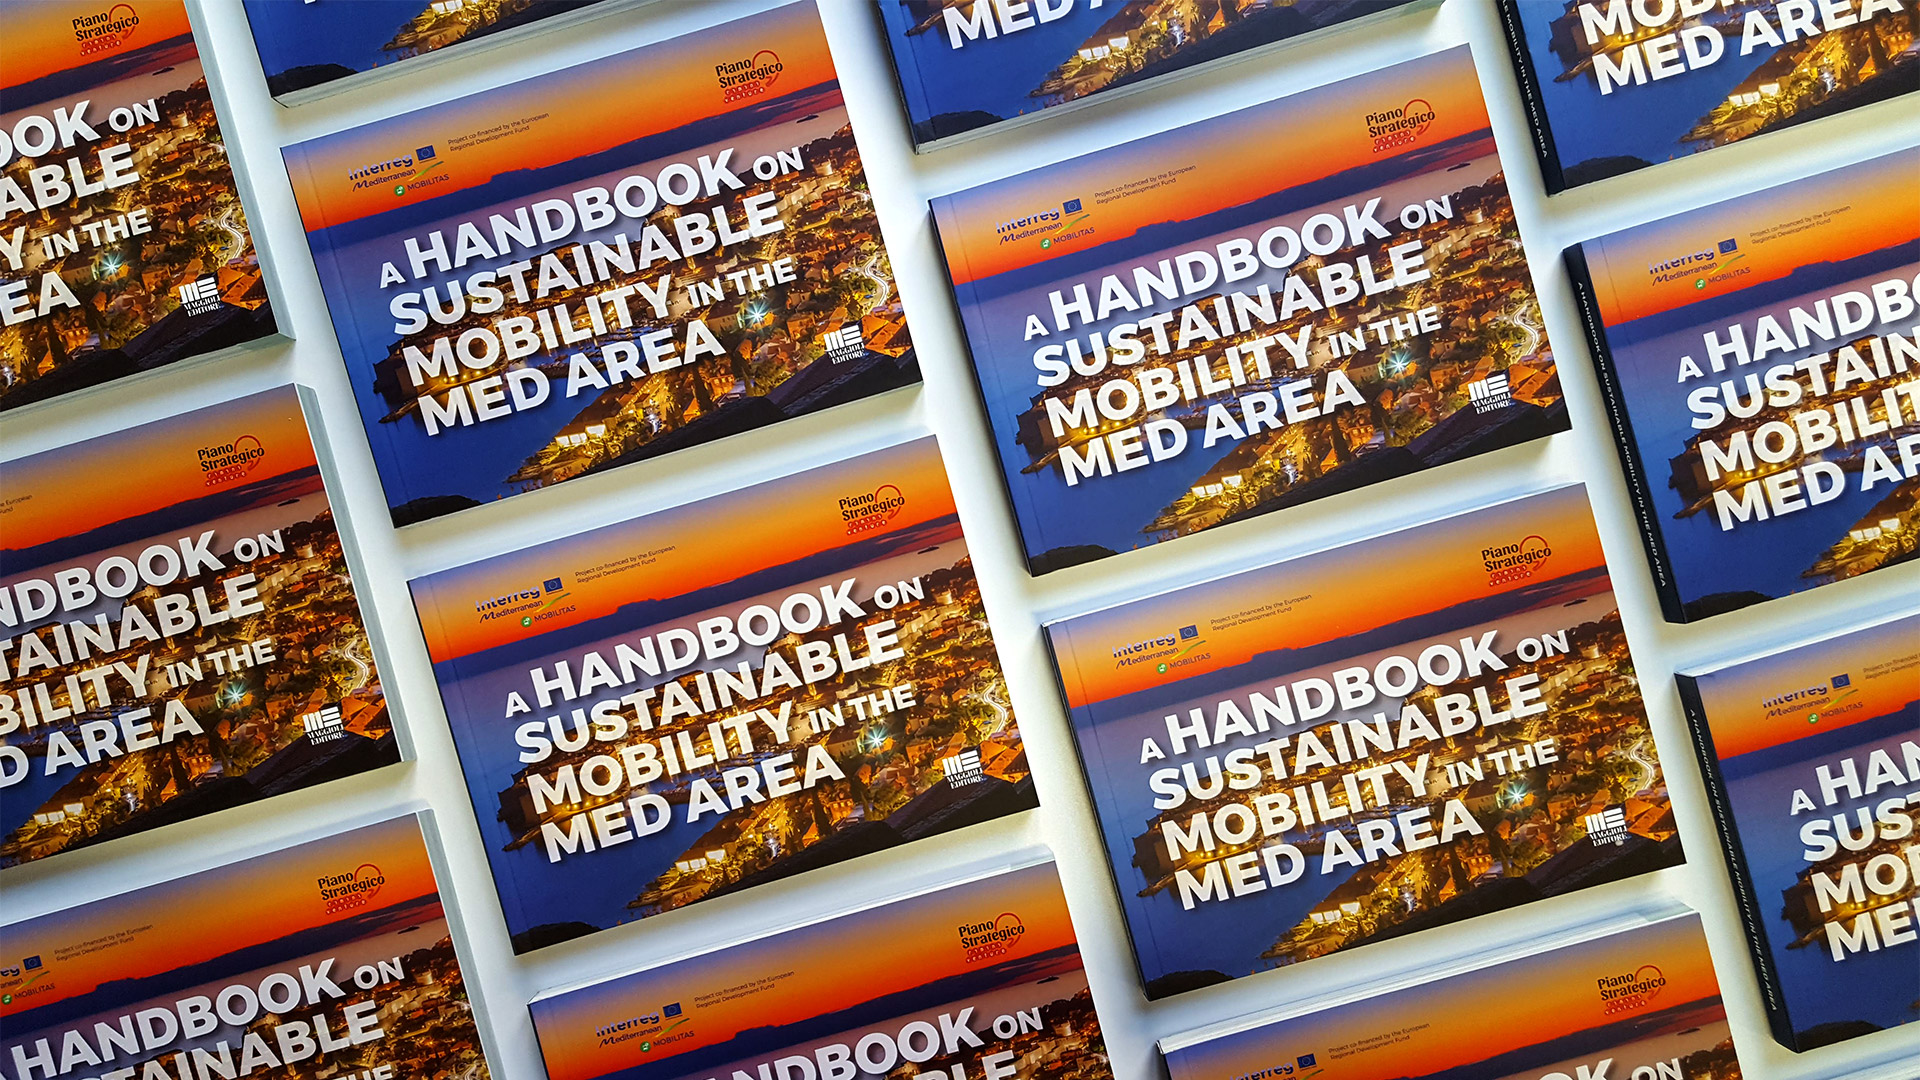 A handbook on sustainable mobility in the MED area